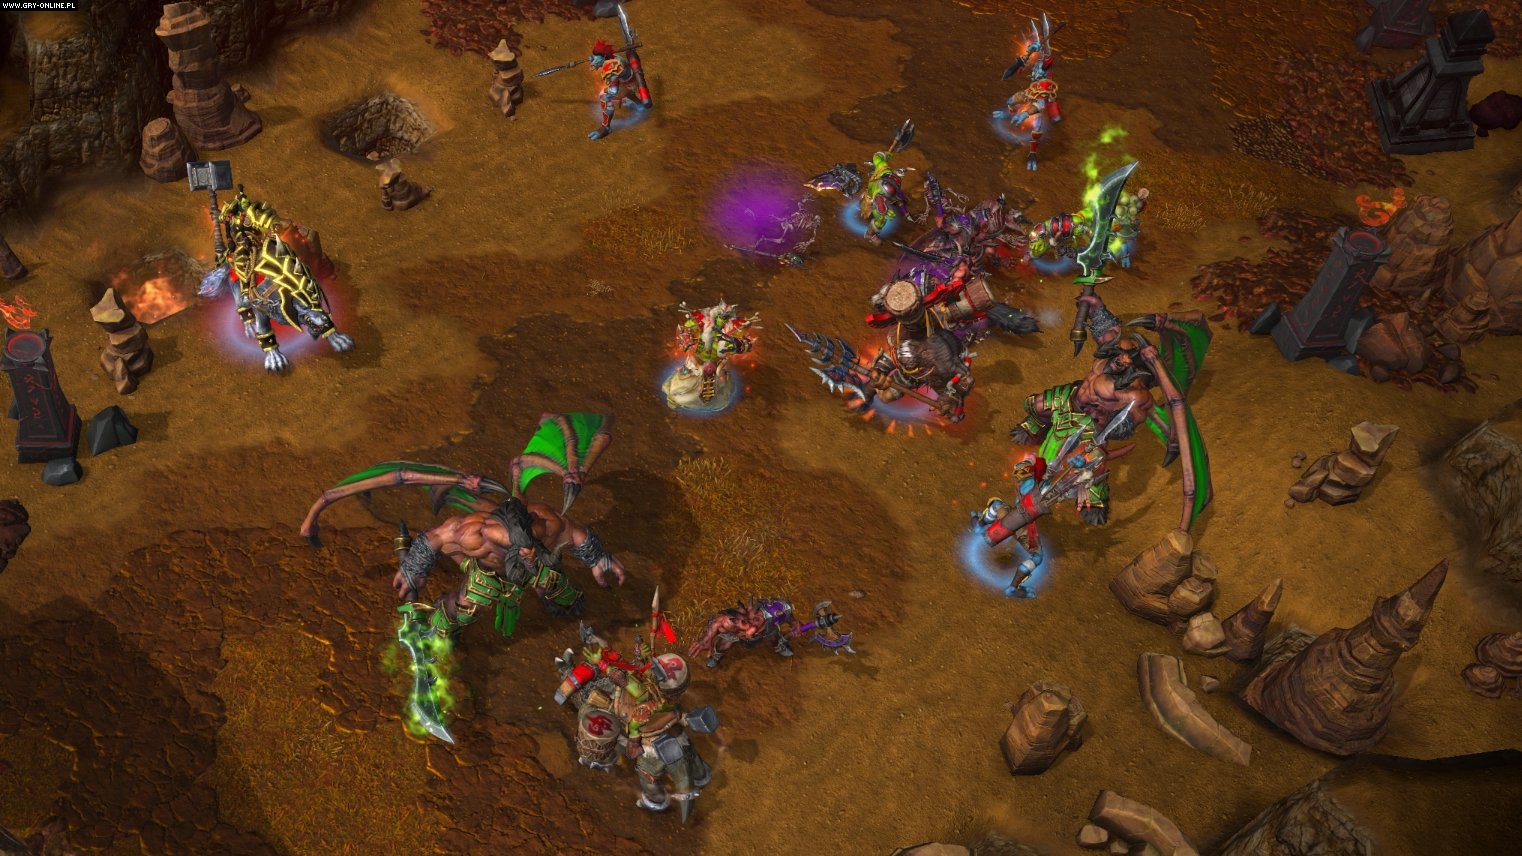 Warcraft III: Reforged PC Games Image 1/41, Blizzard Entertainment, Activision Blizzard